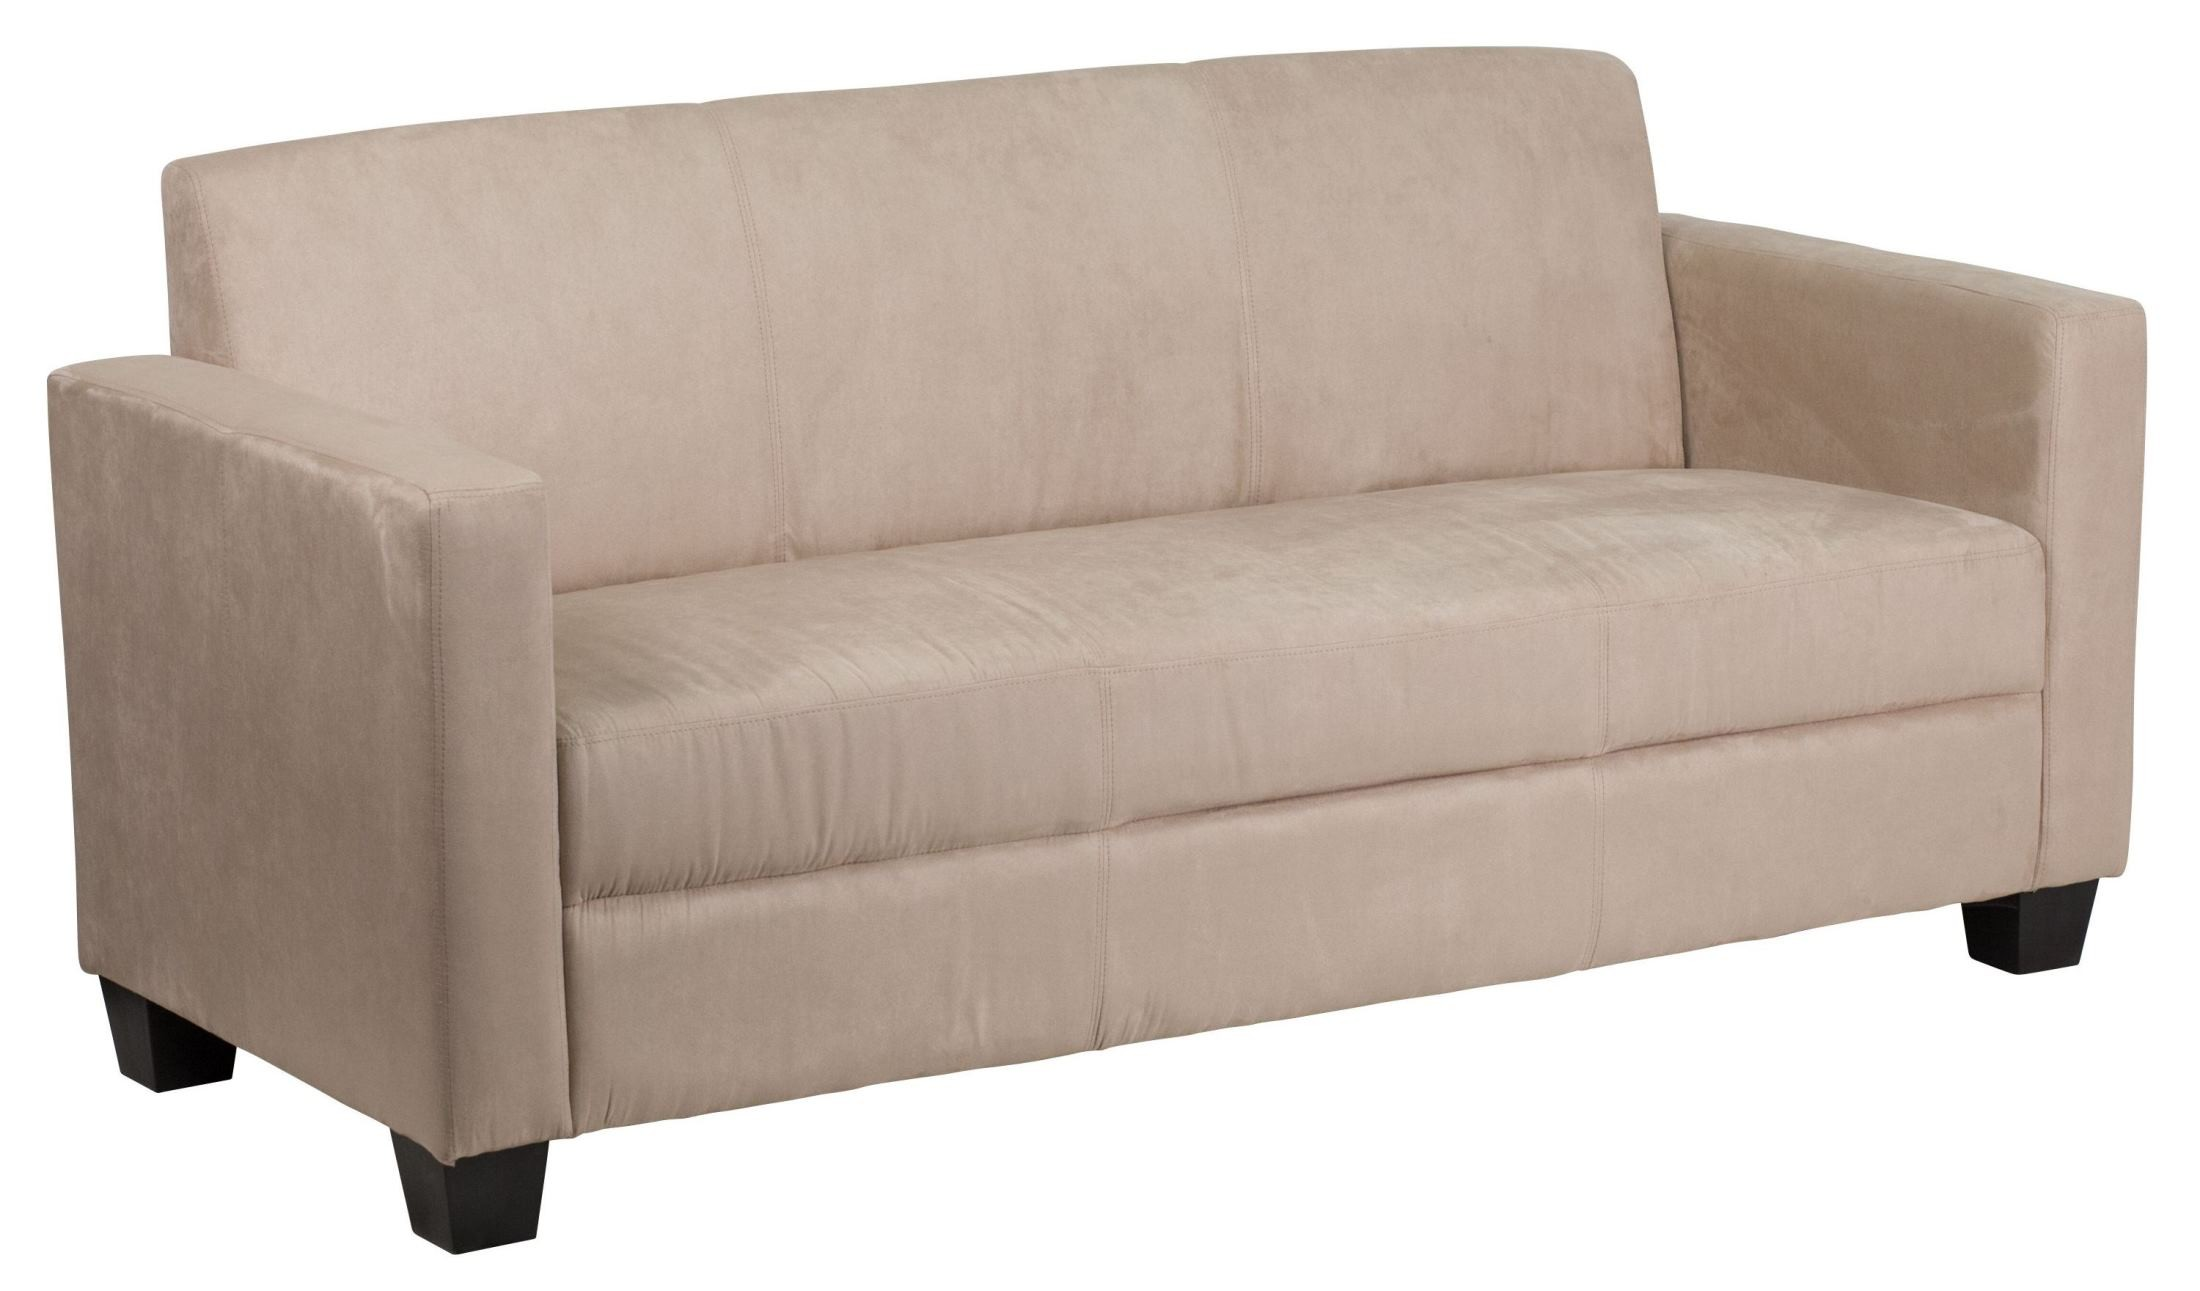 Grand series light brown microfiber sofa from renegade y for Light brown microfiber sectional sofa